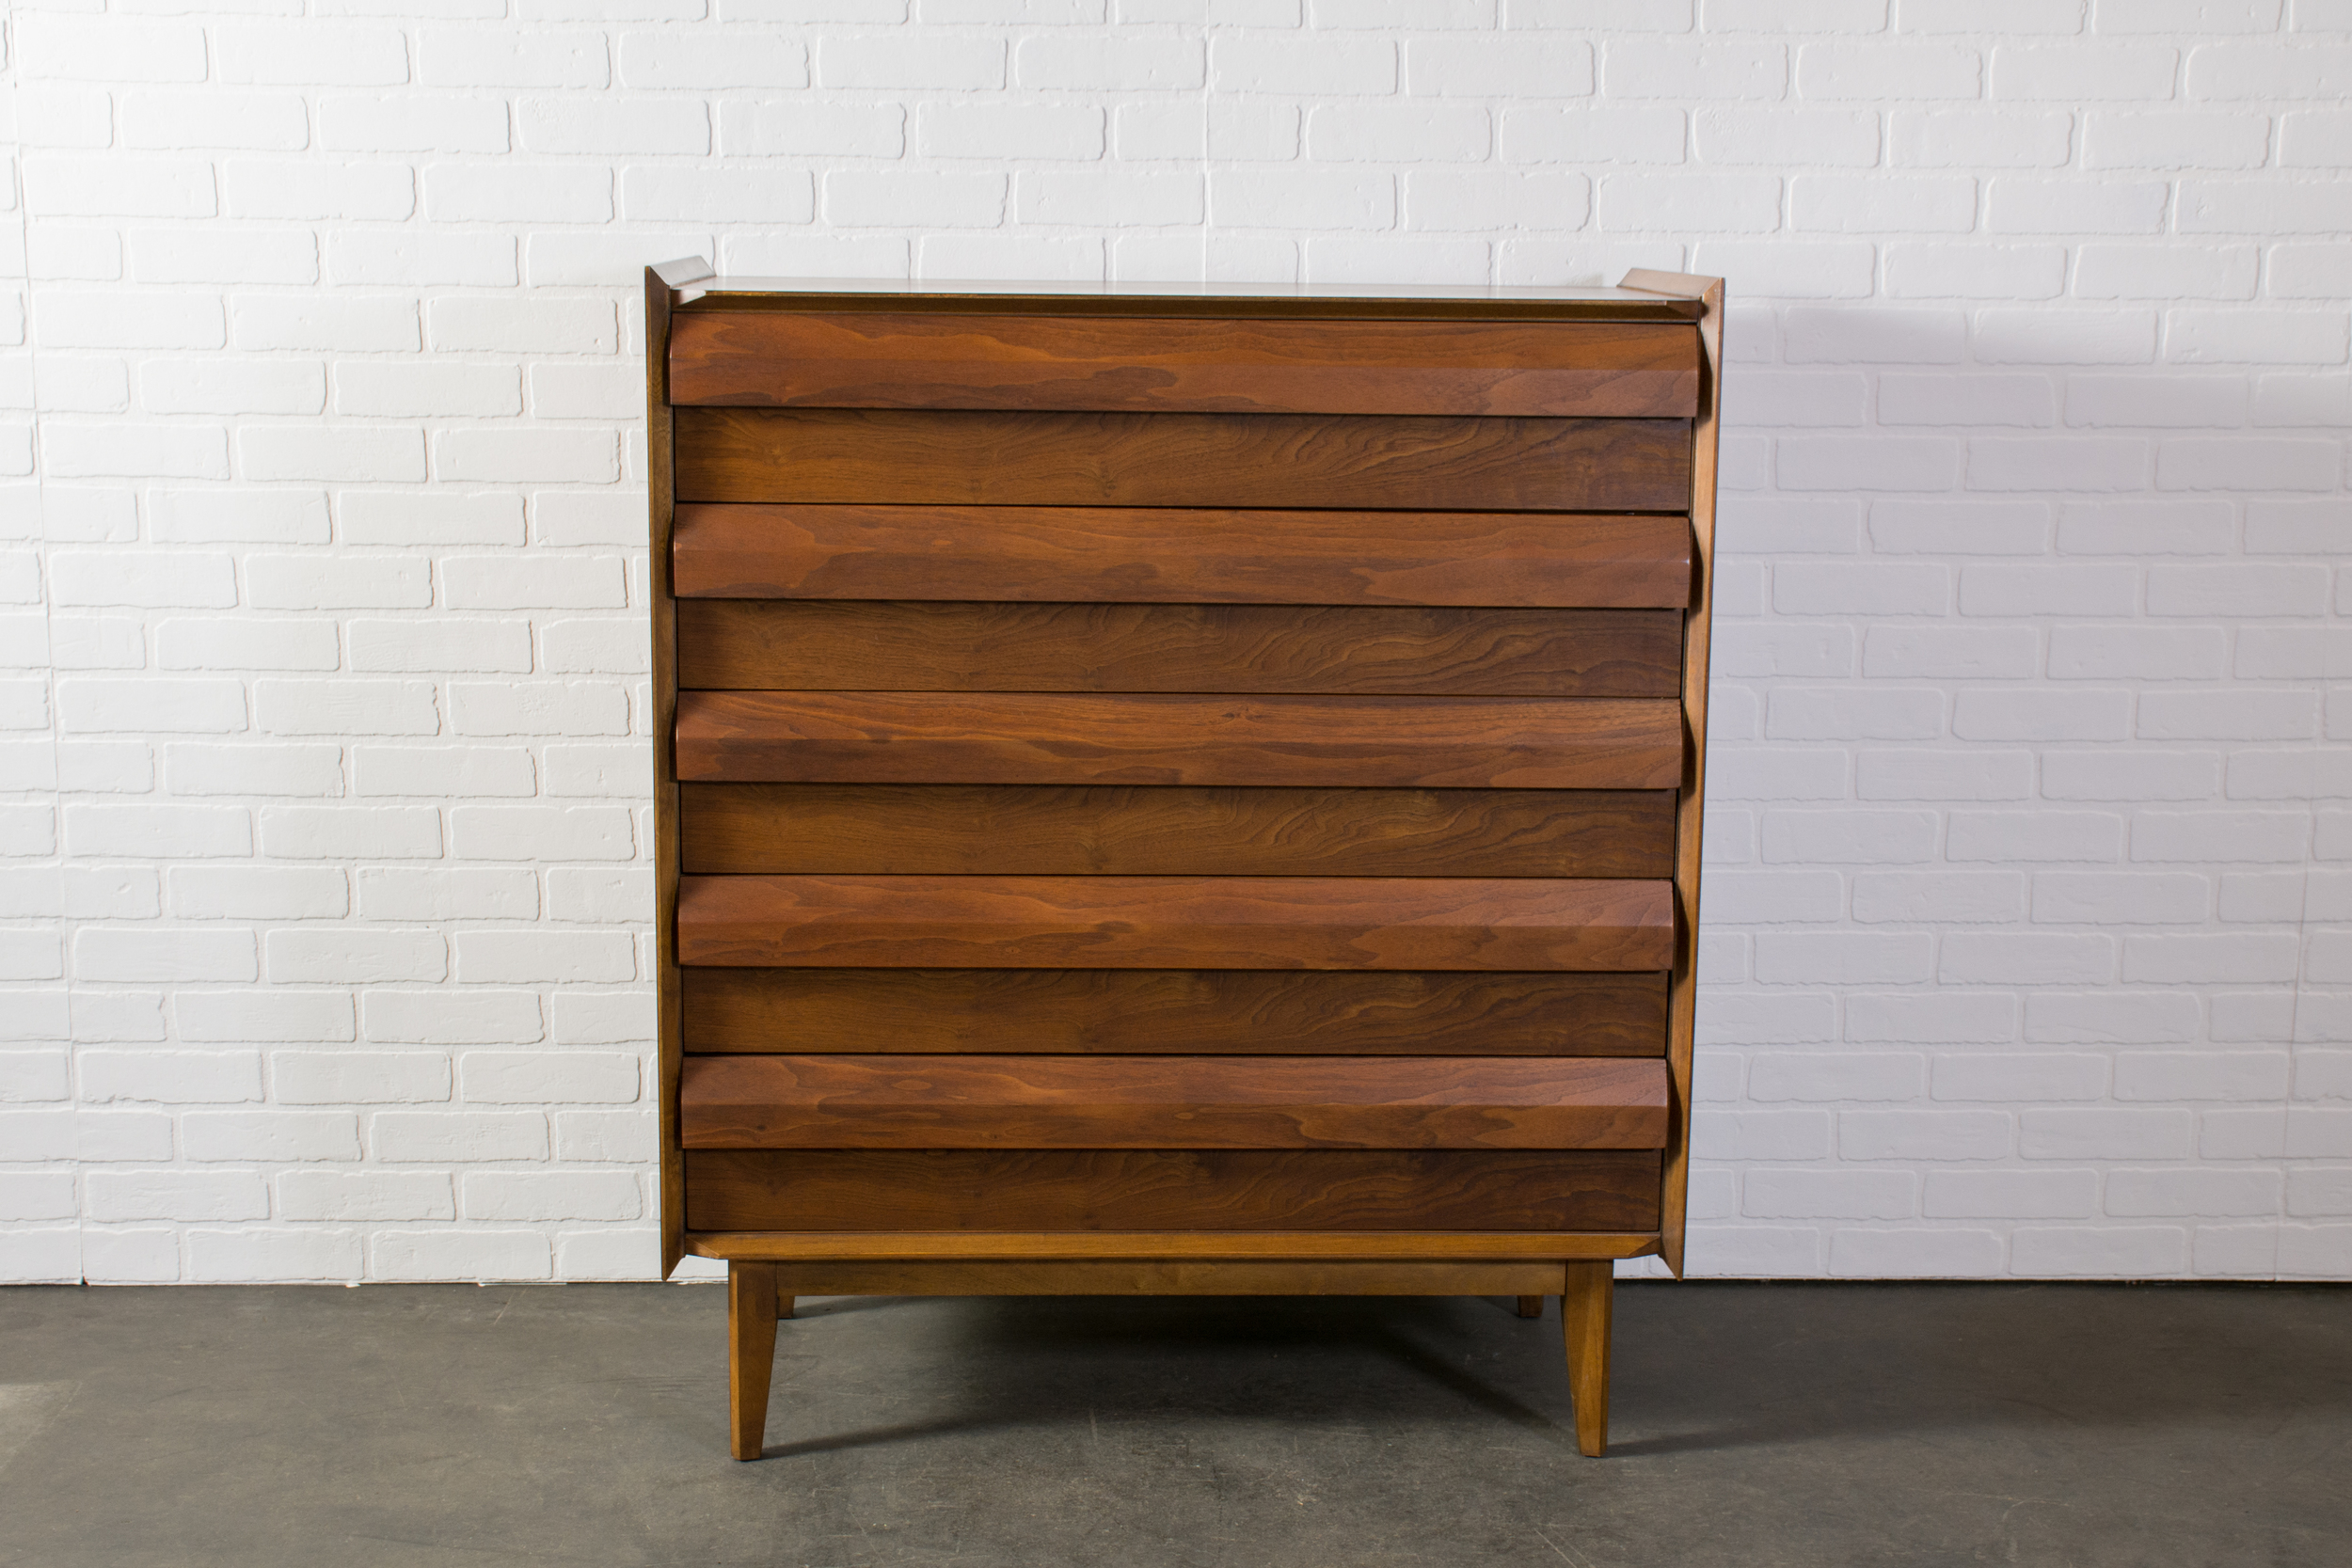 Tall Vintage Mid-Century Dresser by Lane